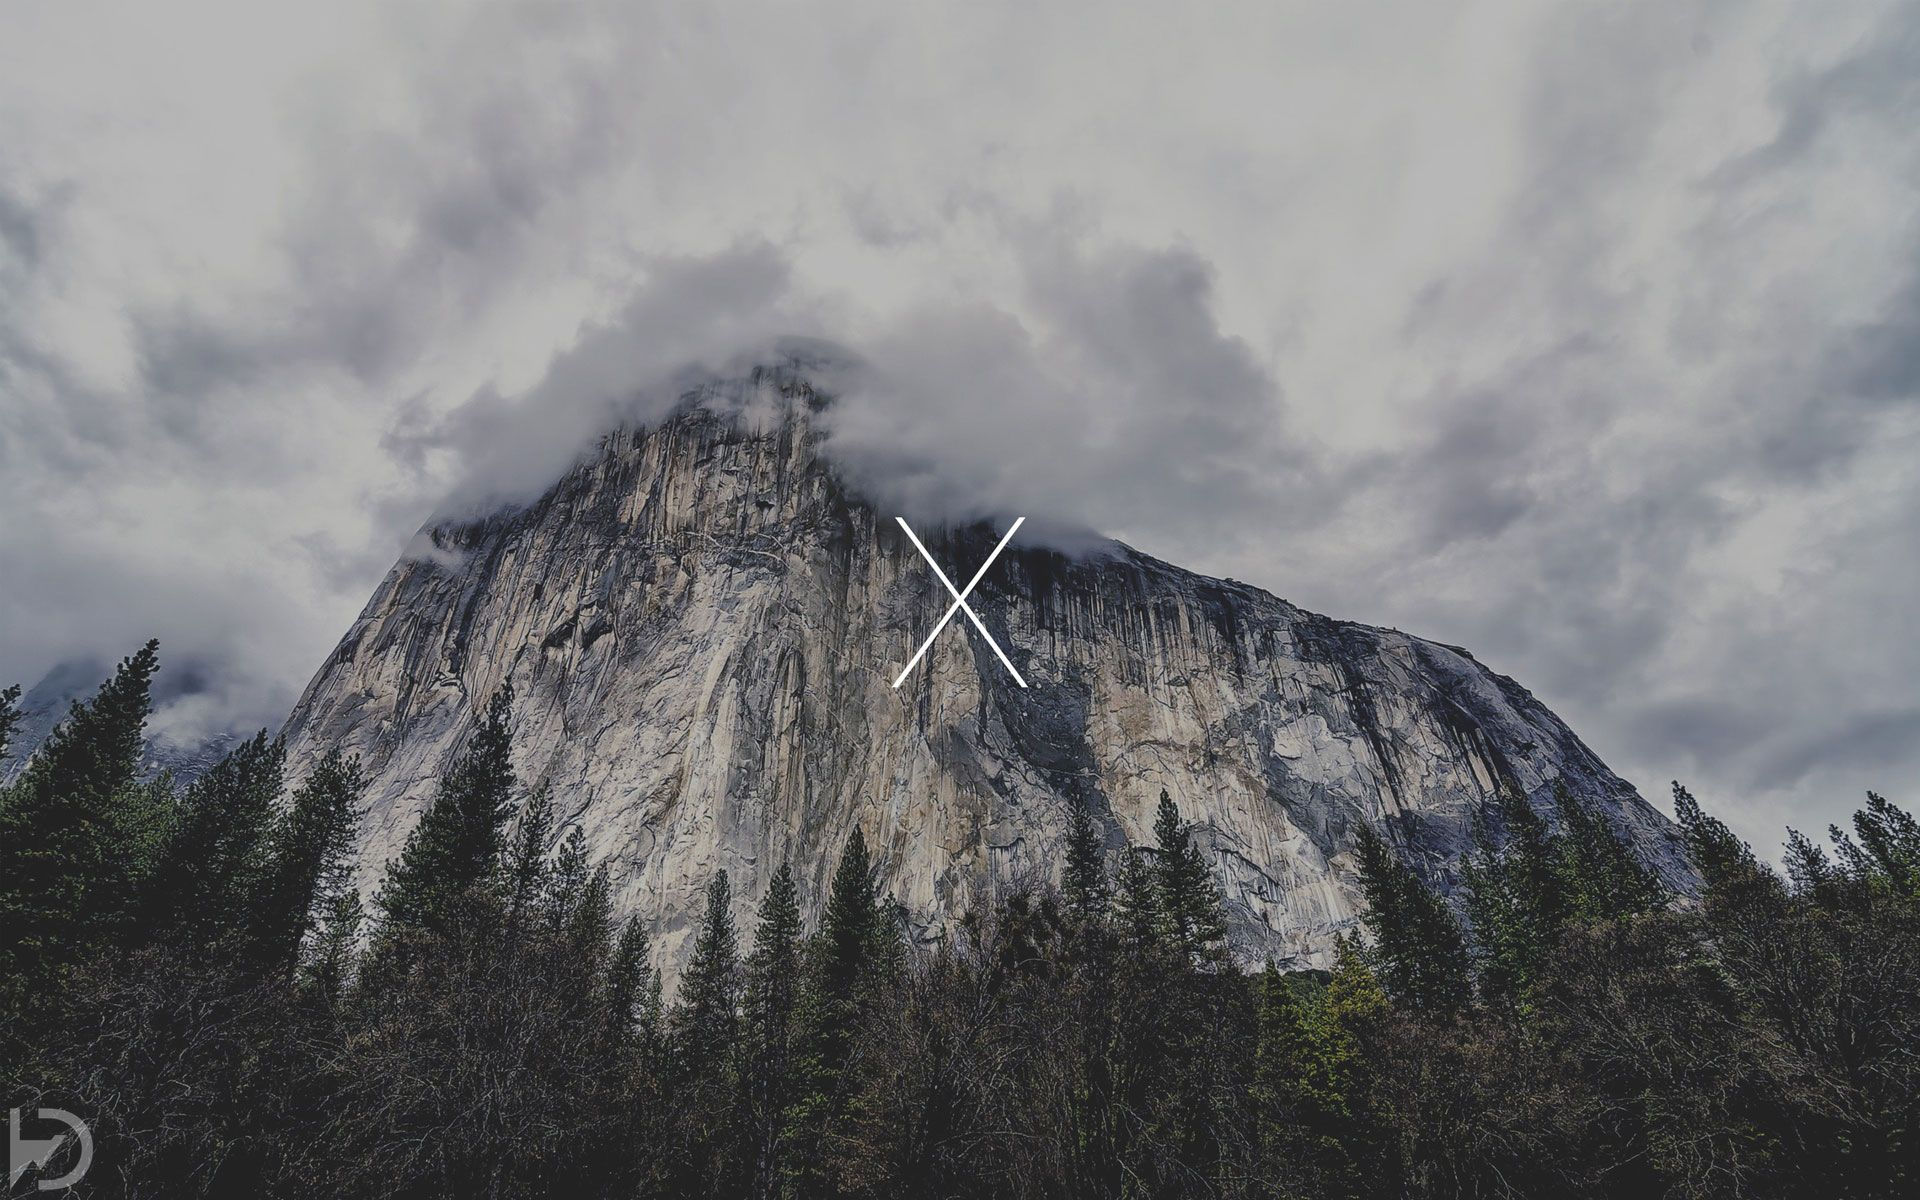 Hd wallpaper yosemite - Yosemite Os X Wallpaper Official Os X Yosemite Hd Wallpapers Free Download